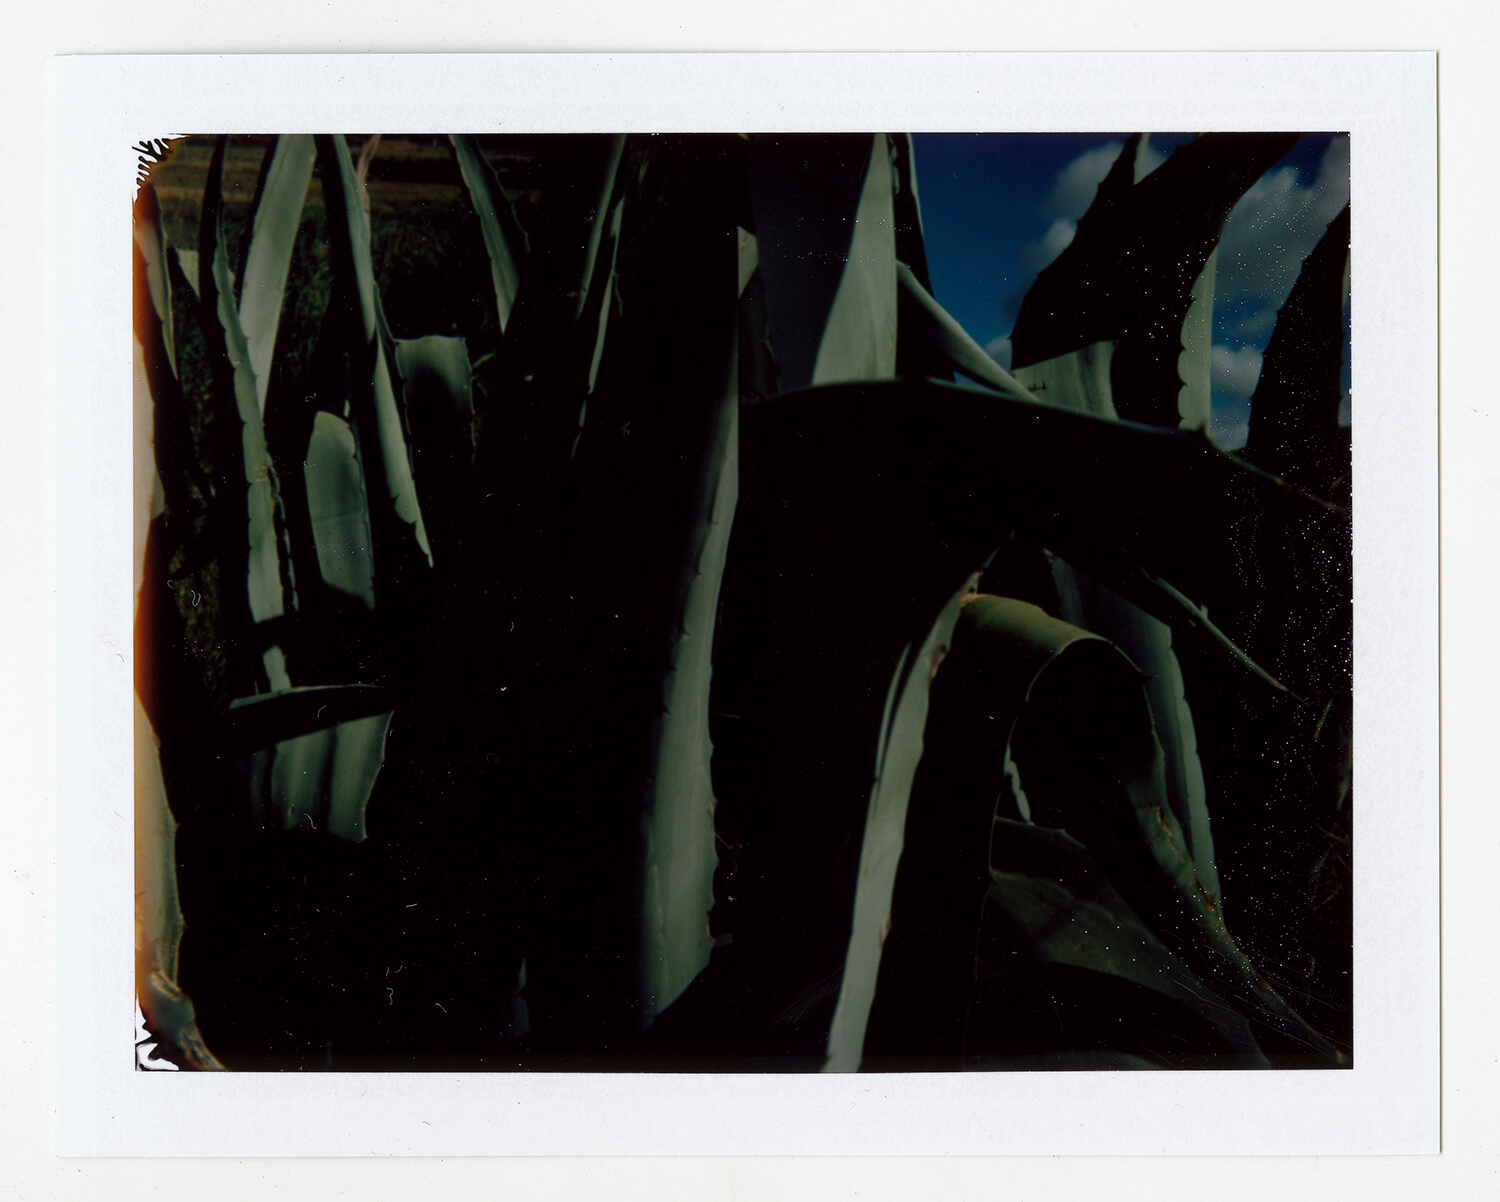 I.D.097, The Polaroid Revolutionary Workers, 2013, Polaroid Picture, 107mm x 86mm